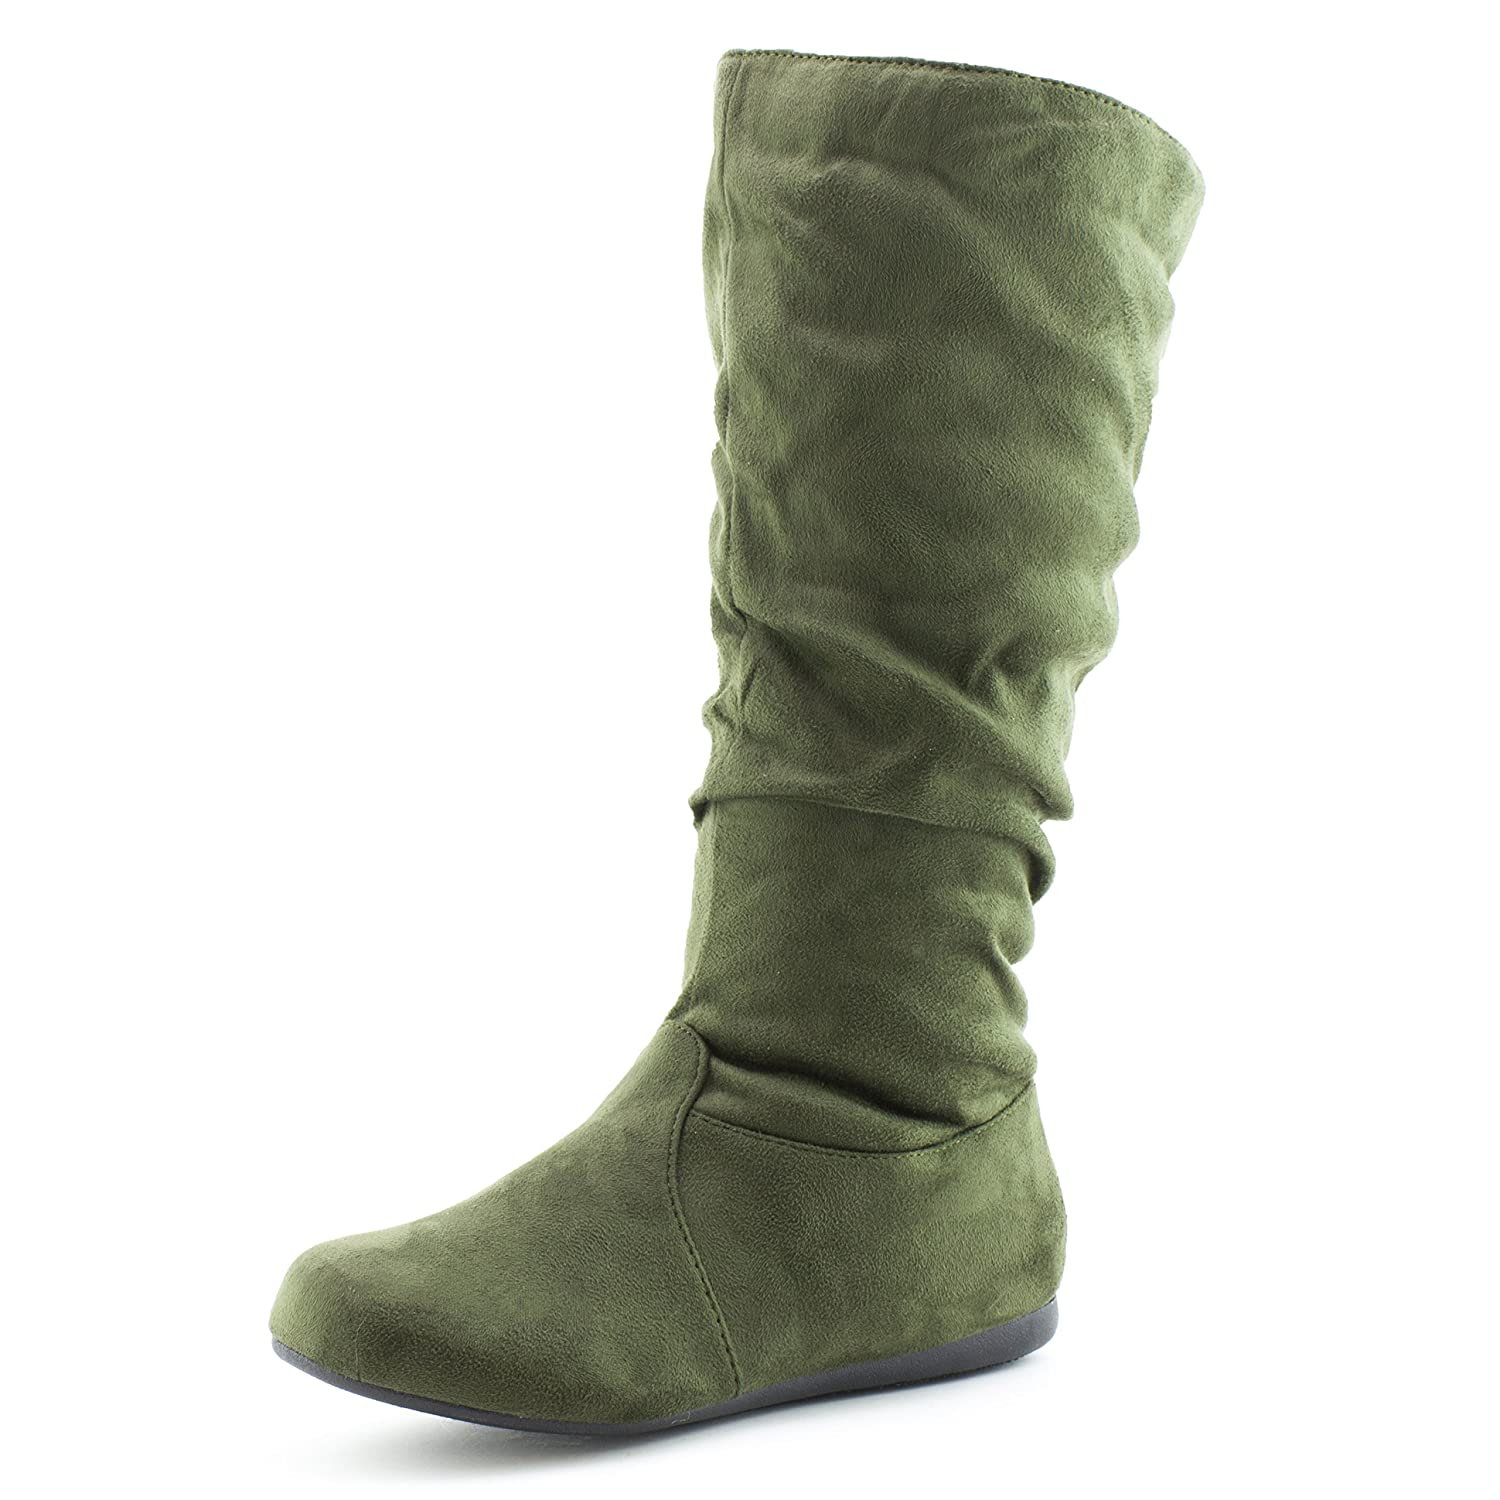 Generation19 Womens Mid Calf 13 Inch Faux Suede Boots (Adults)